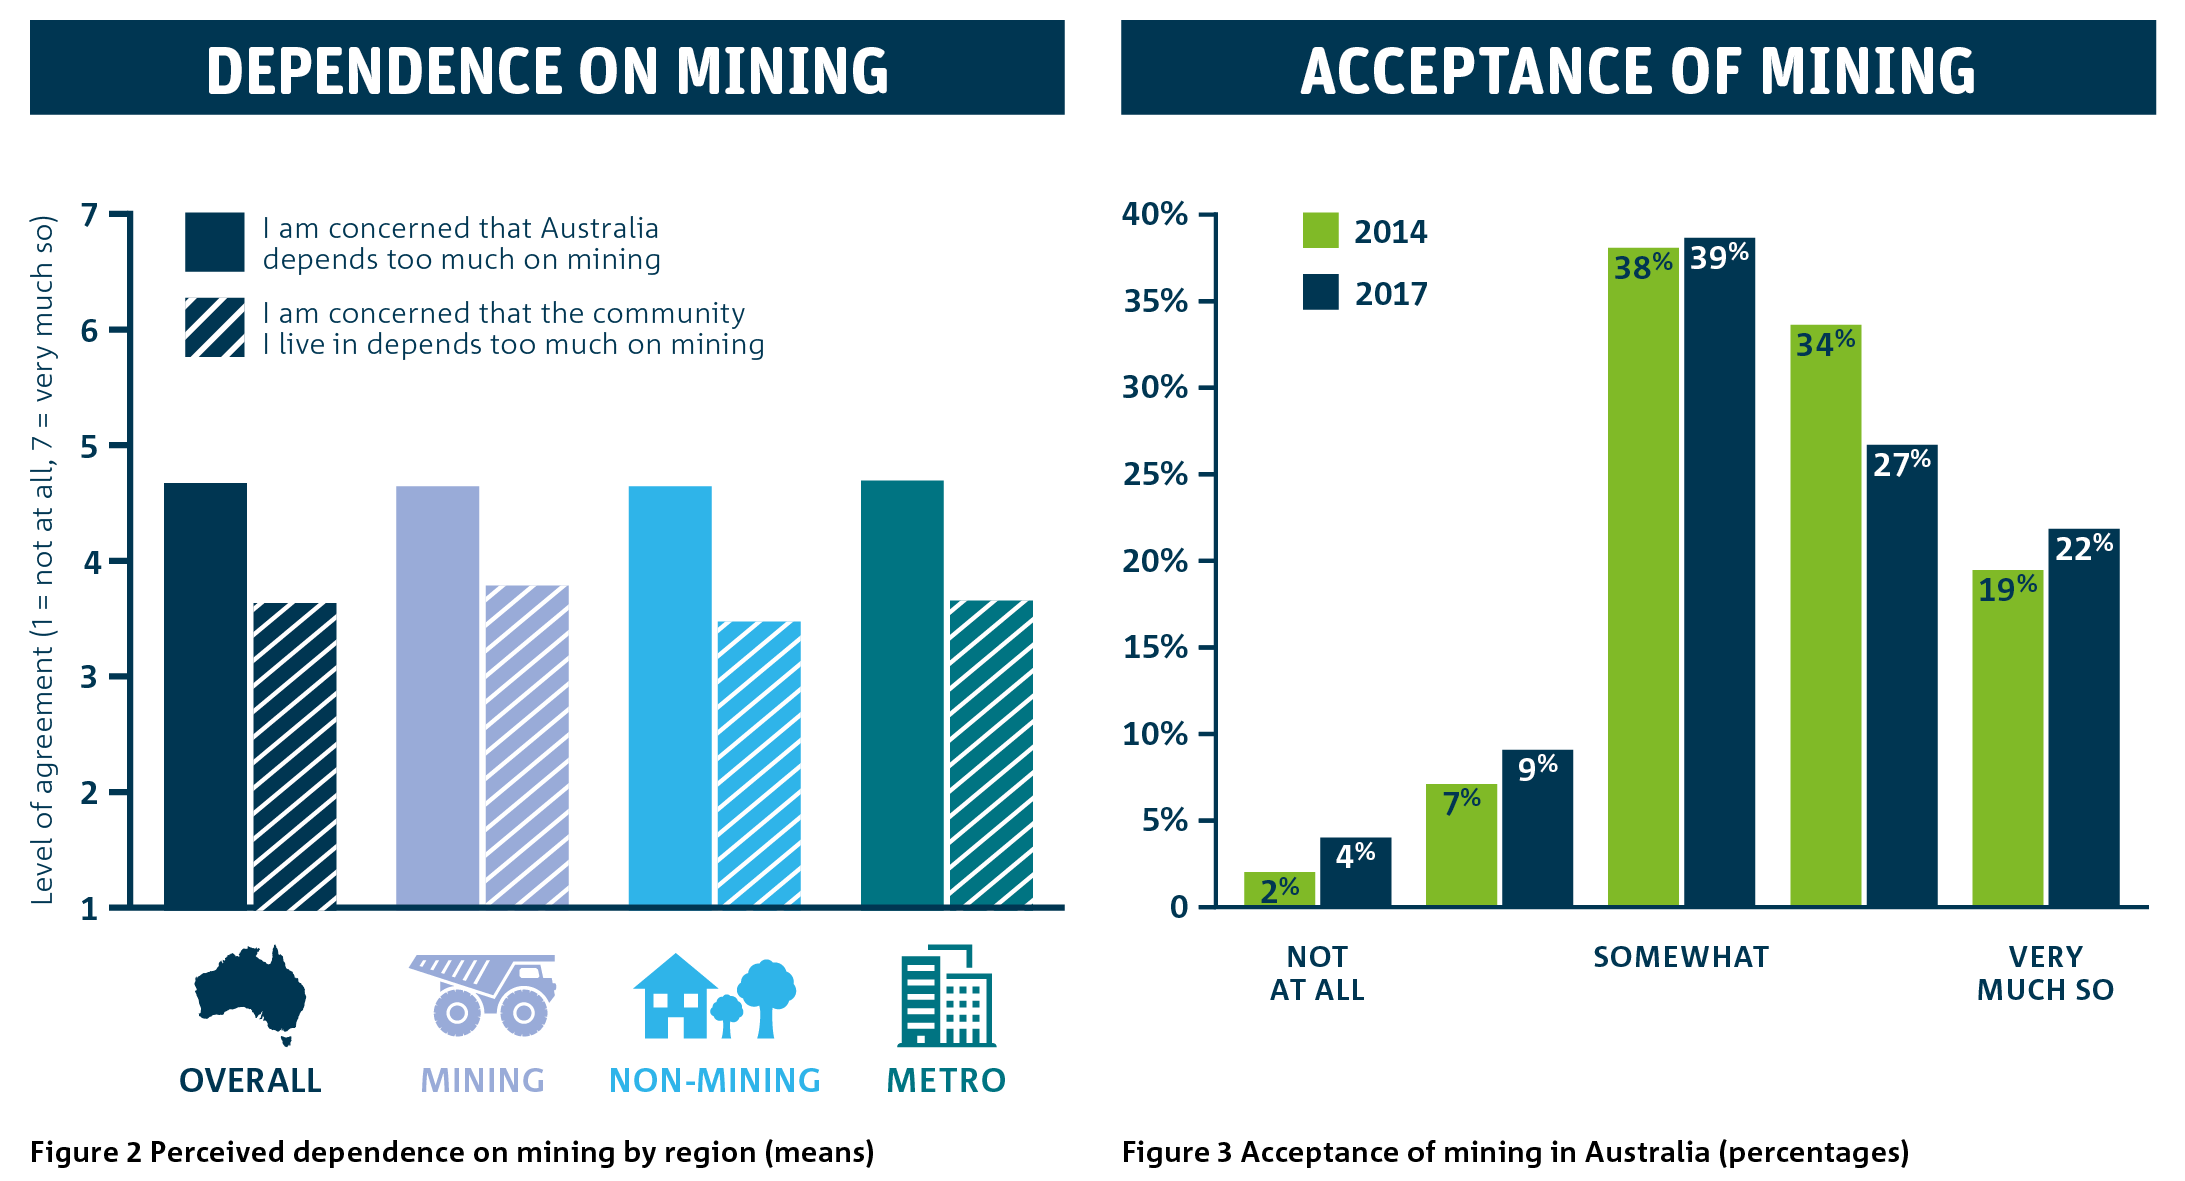 Two bar graphs showing participants perception of Australia's dependence on mining versus their acceptance of the industry.